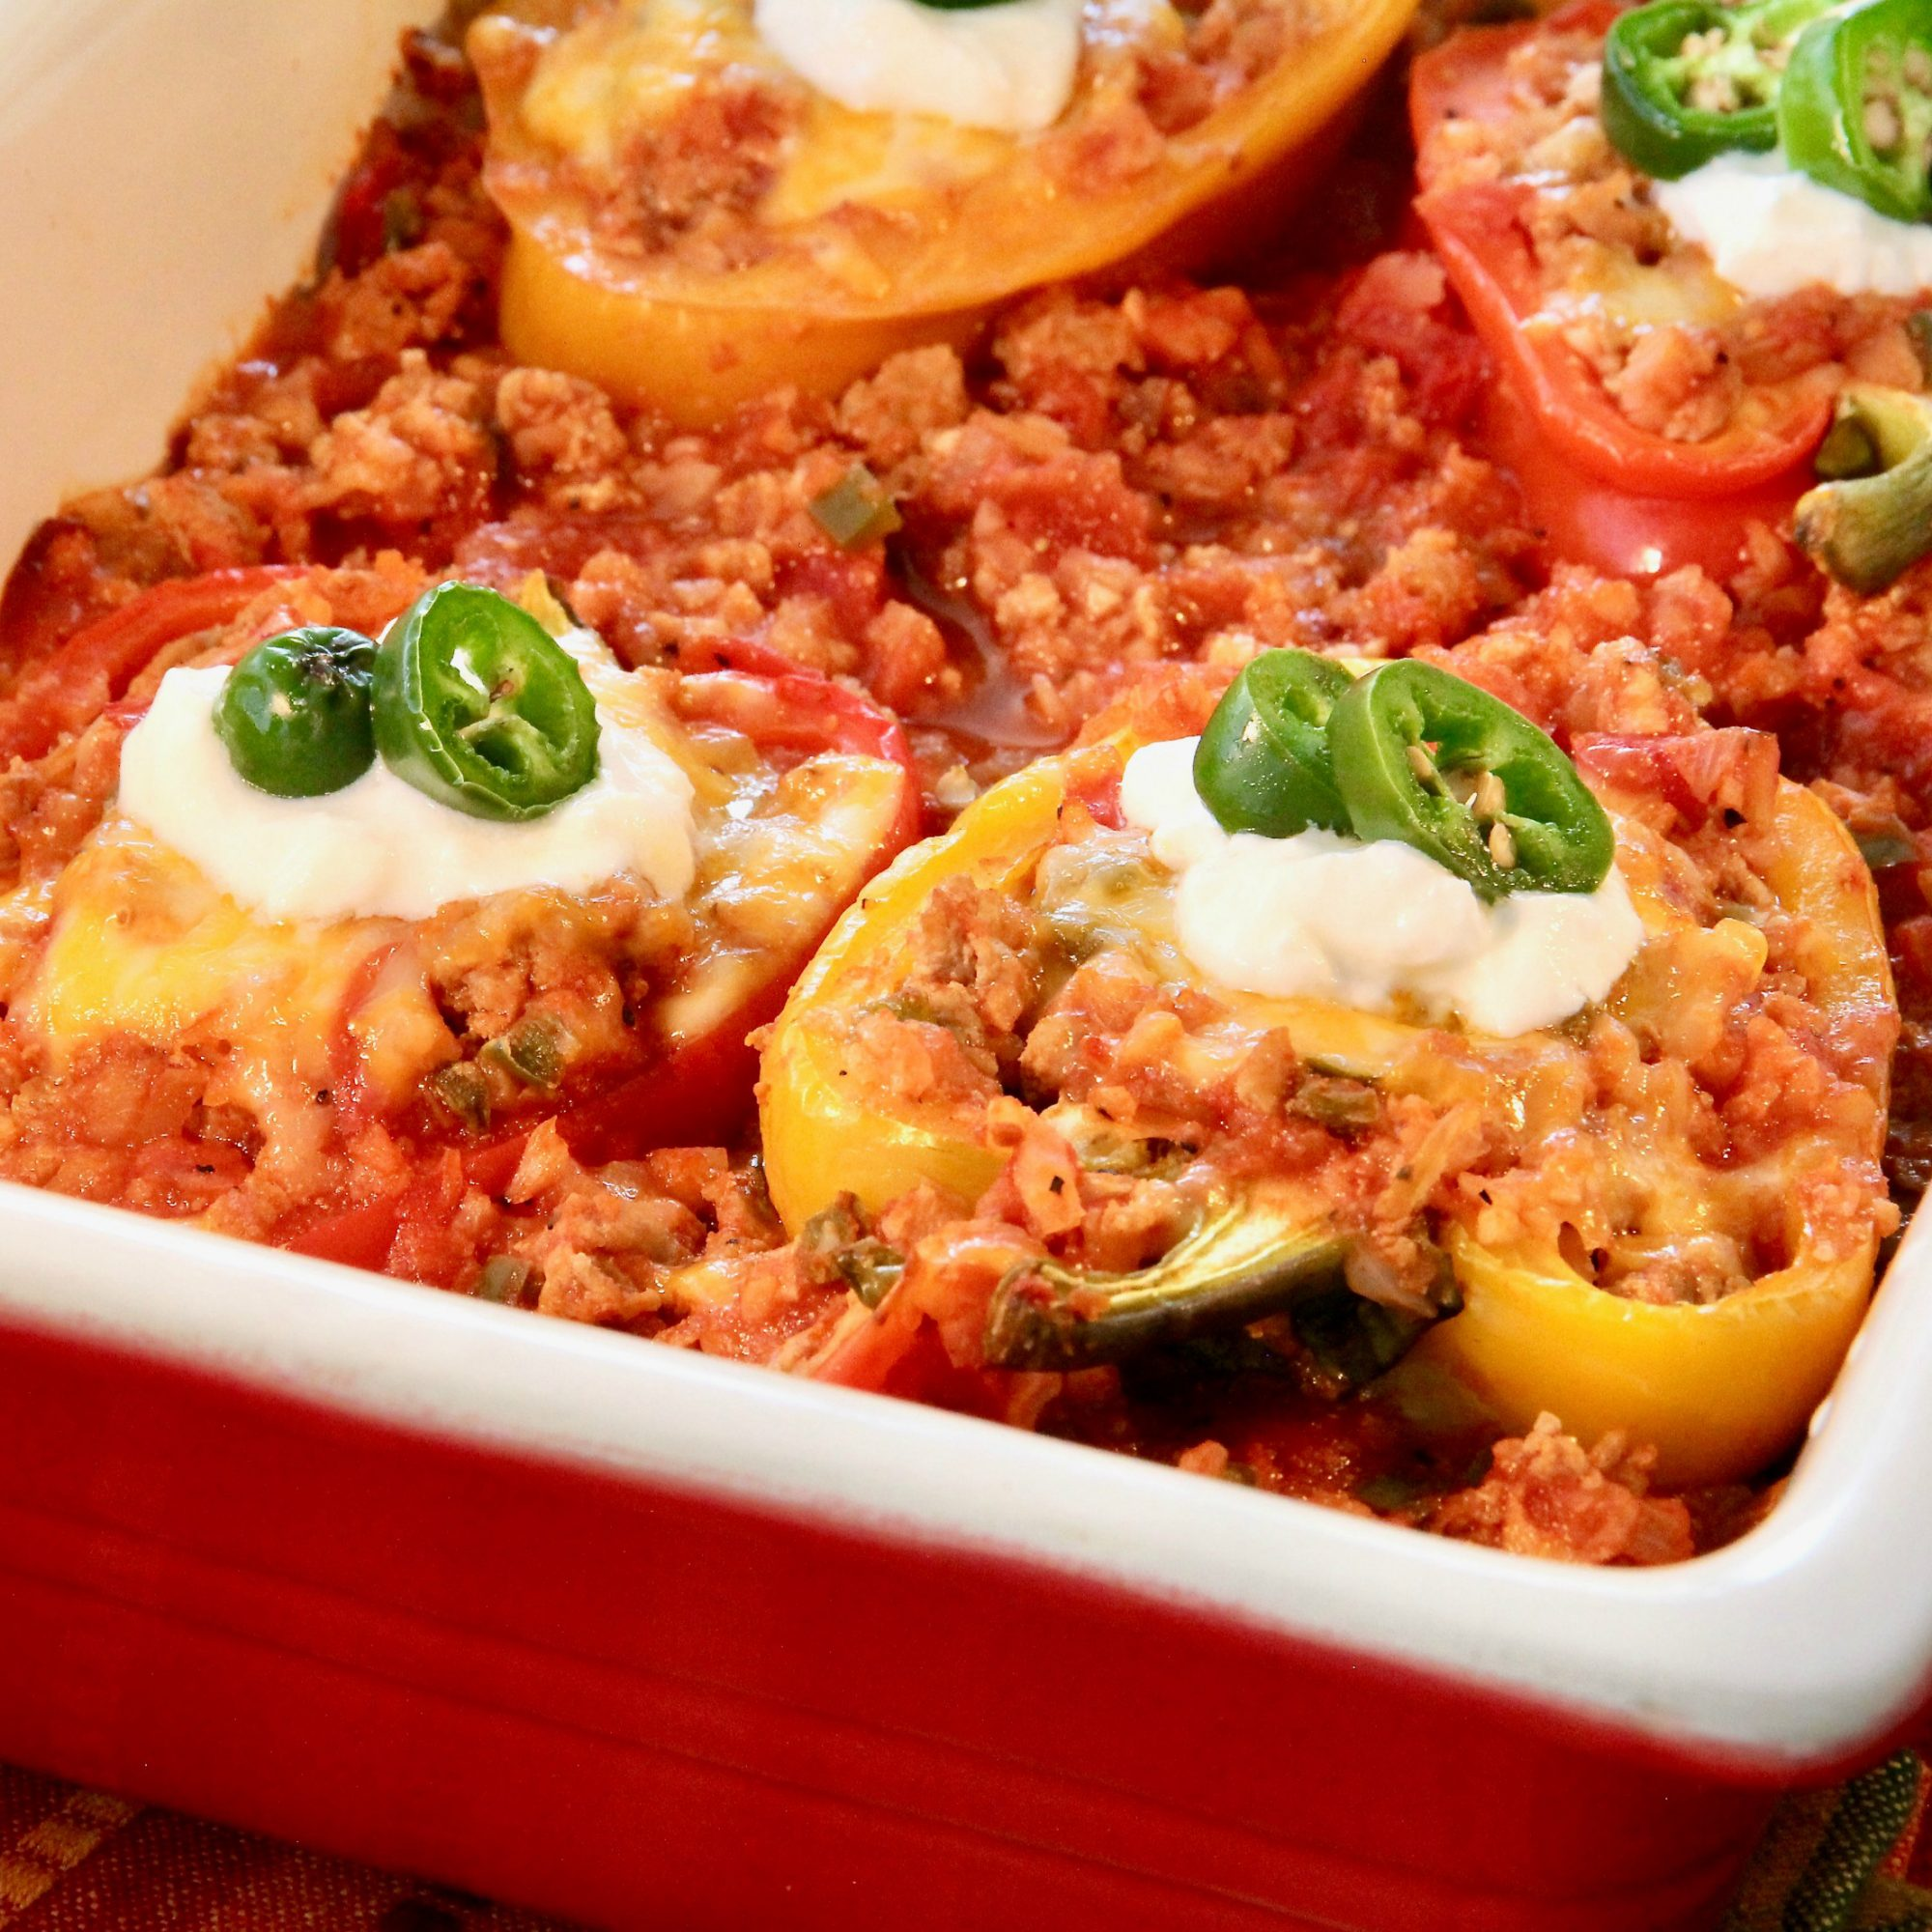 Low Carb Turkey-Stuffed Peppers in a red dish